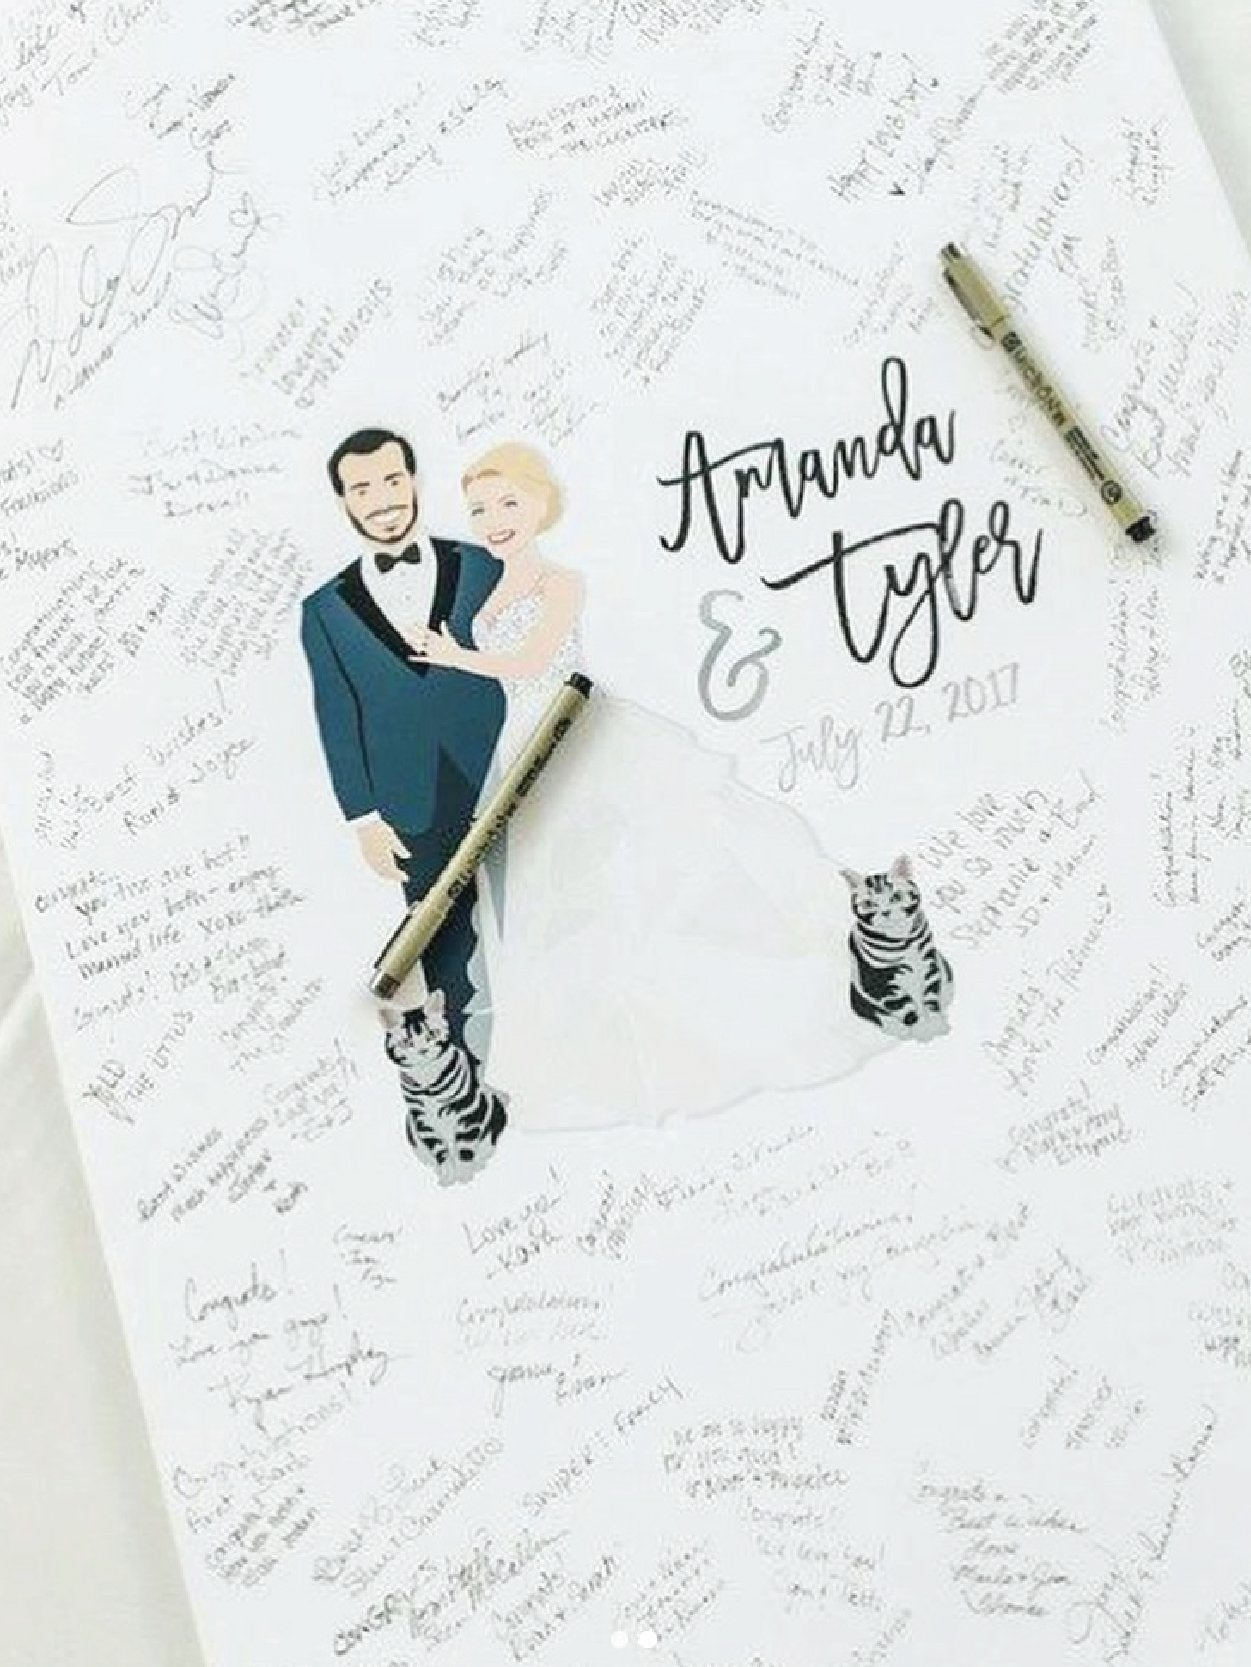 Guest Book Alternative with Wedding Portrait and Guest Signatures